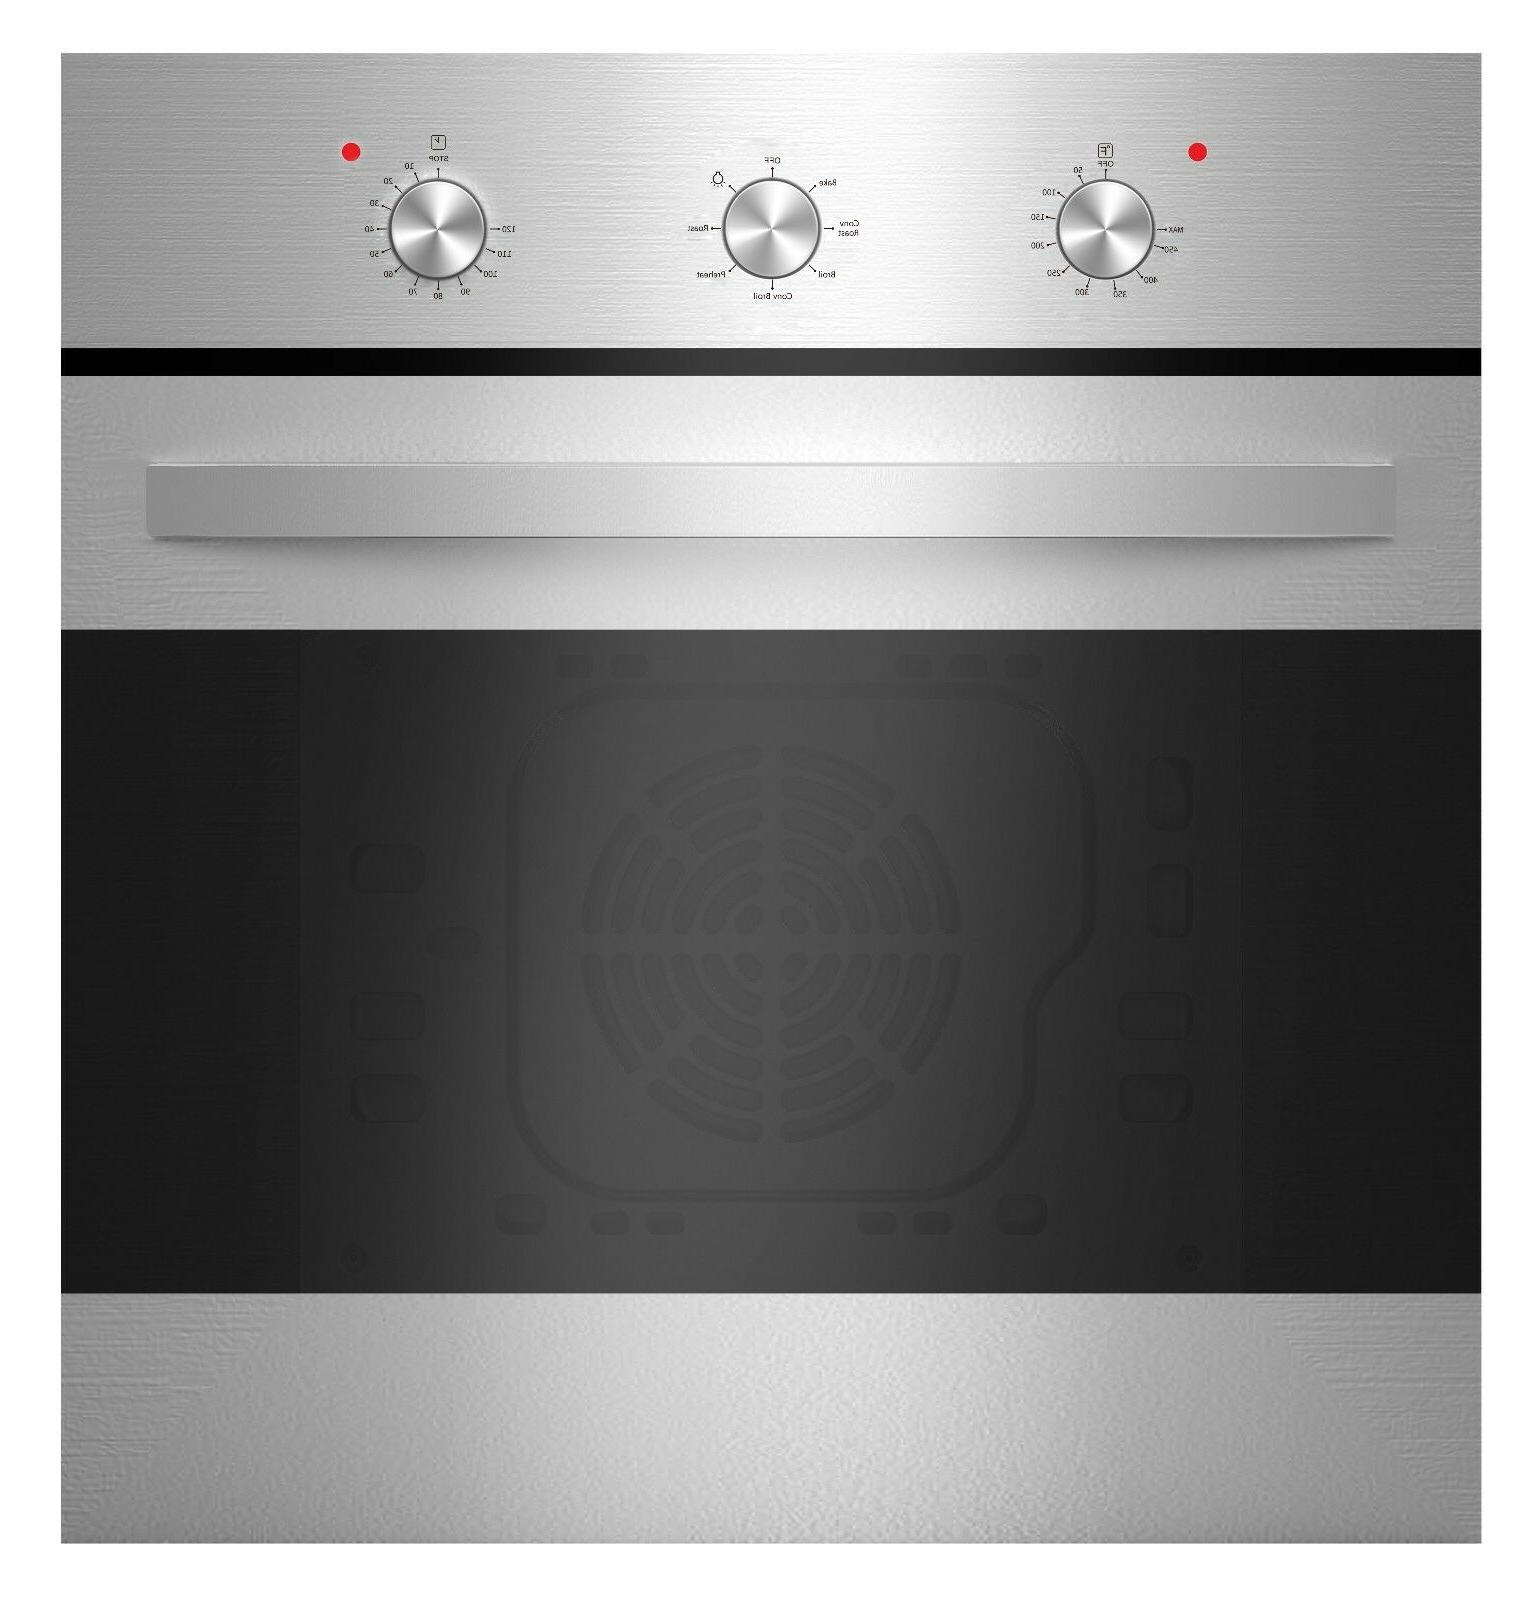 24 stainless steel electric built in convection